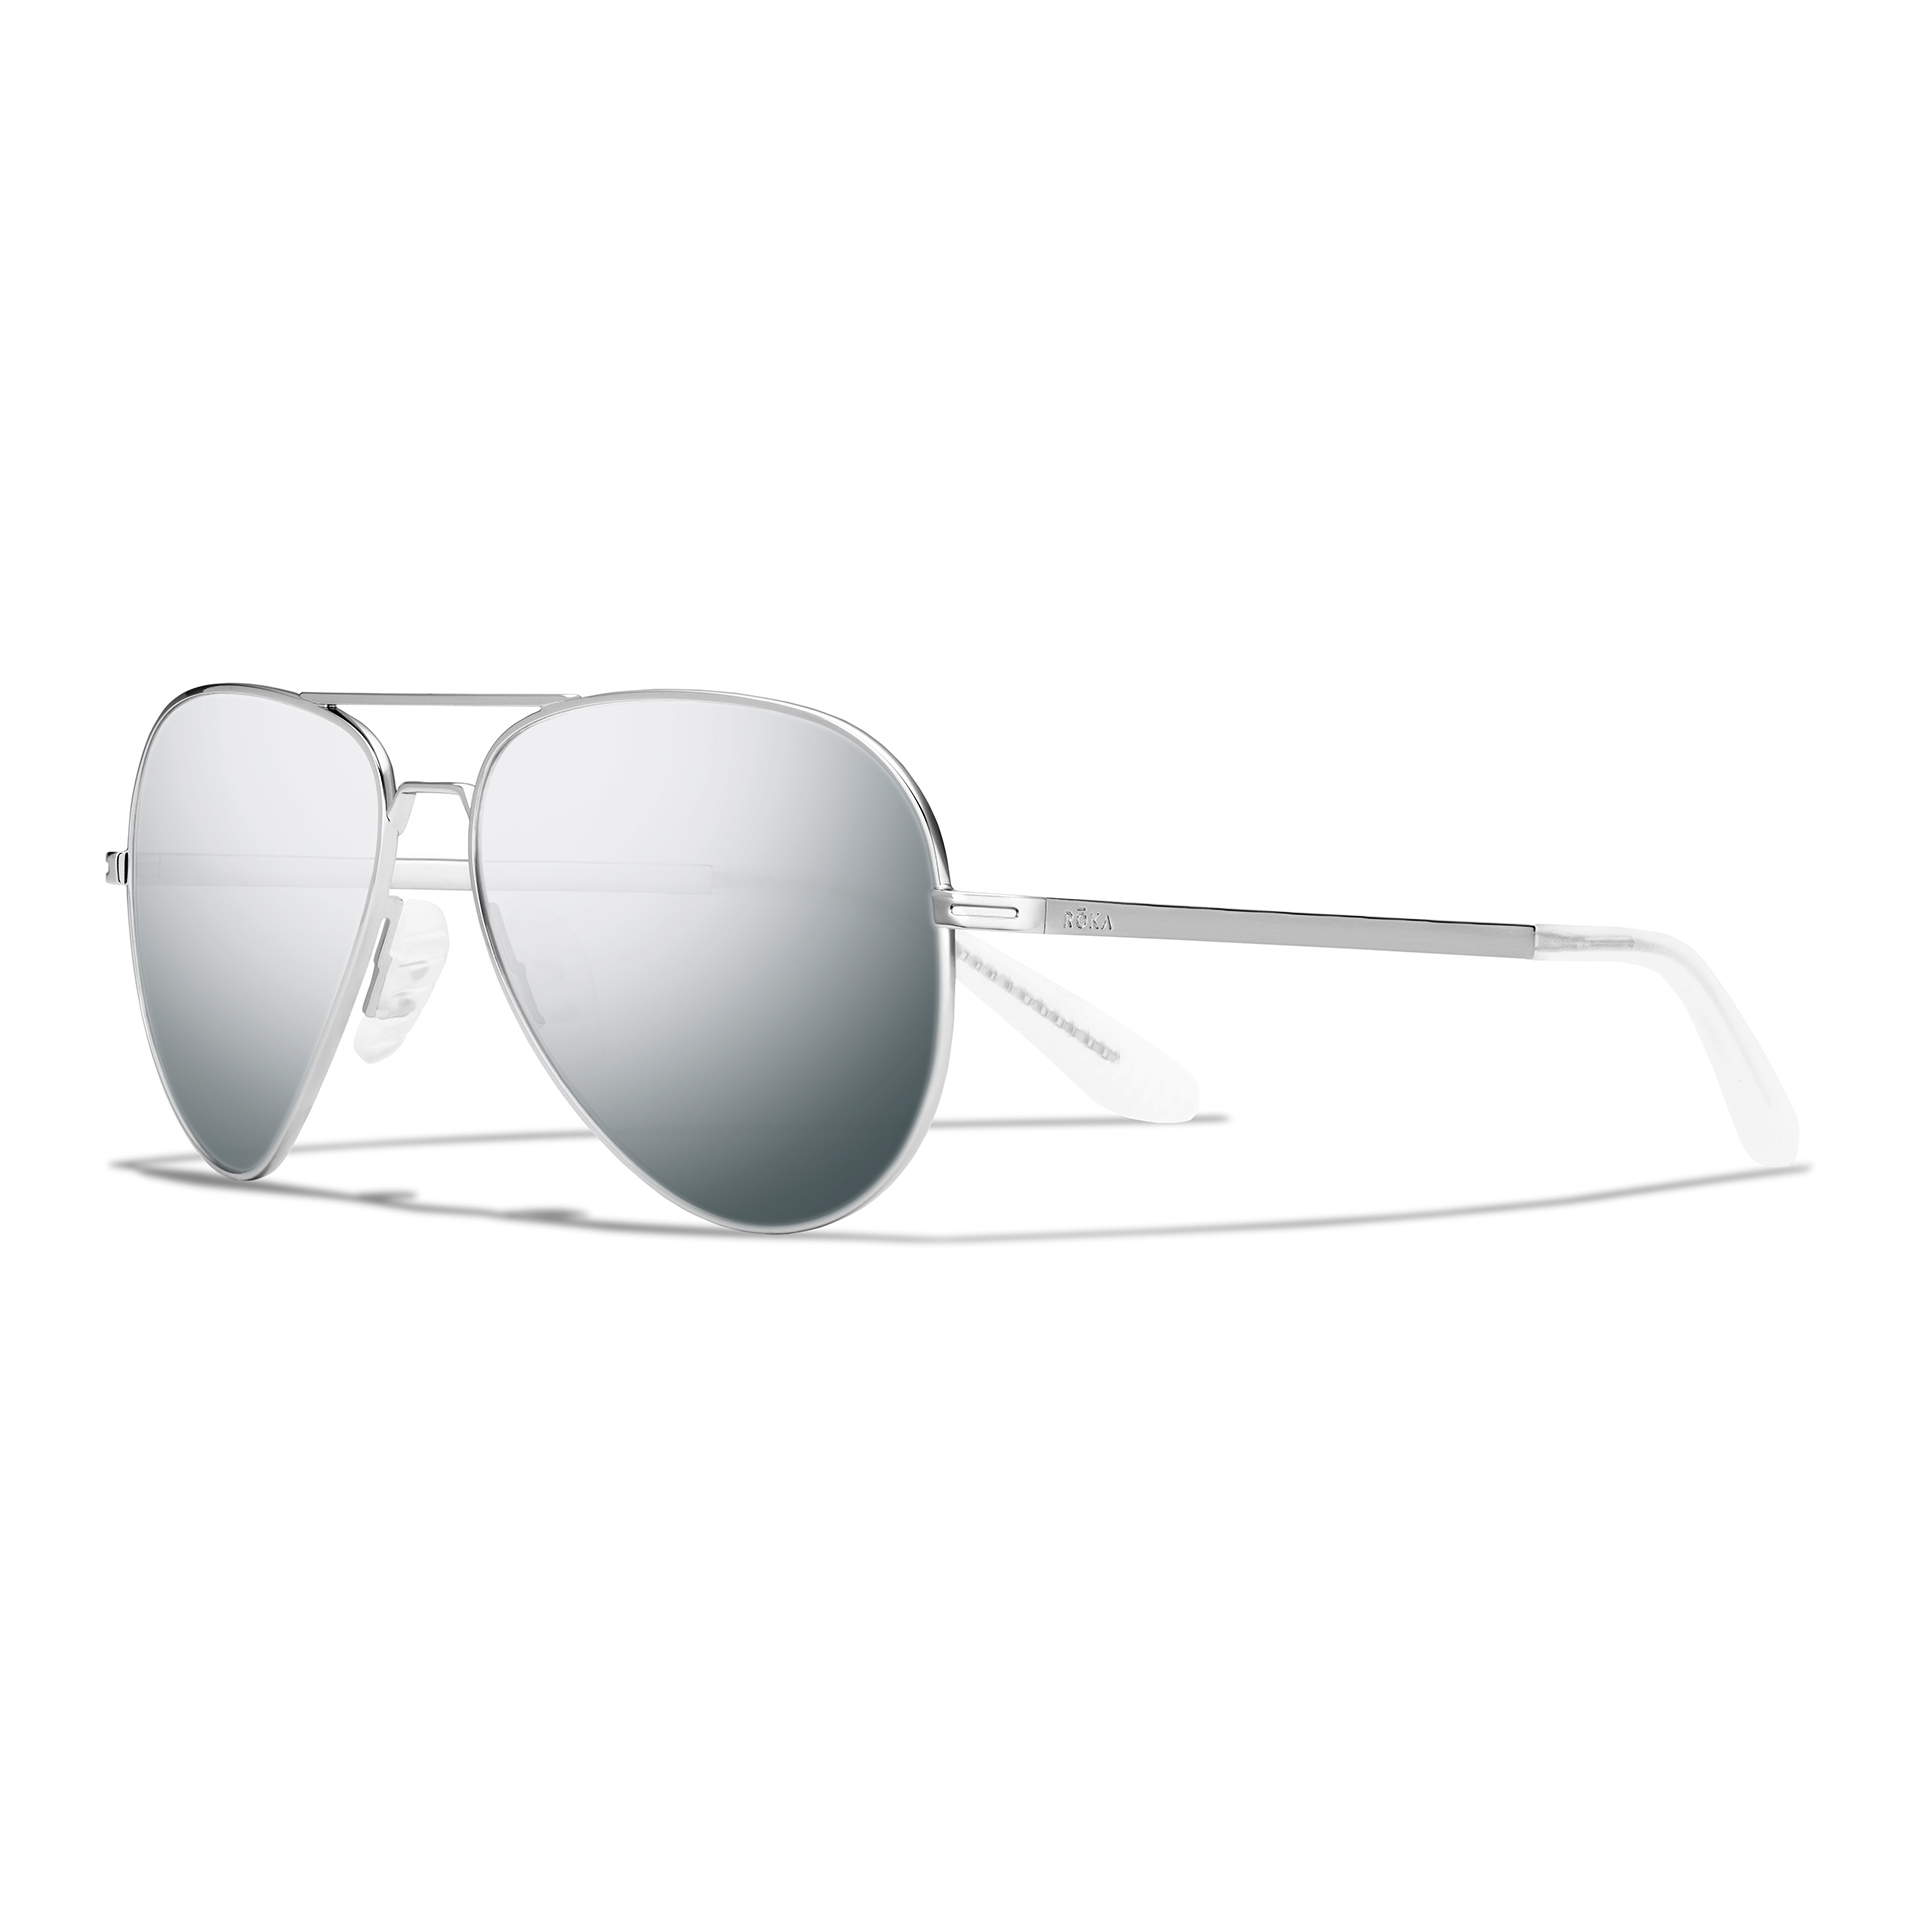 Side view of phanton silver frame, dark arctic mirror lens